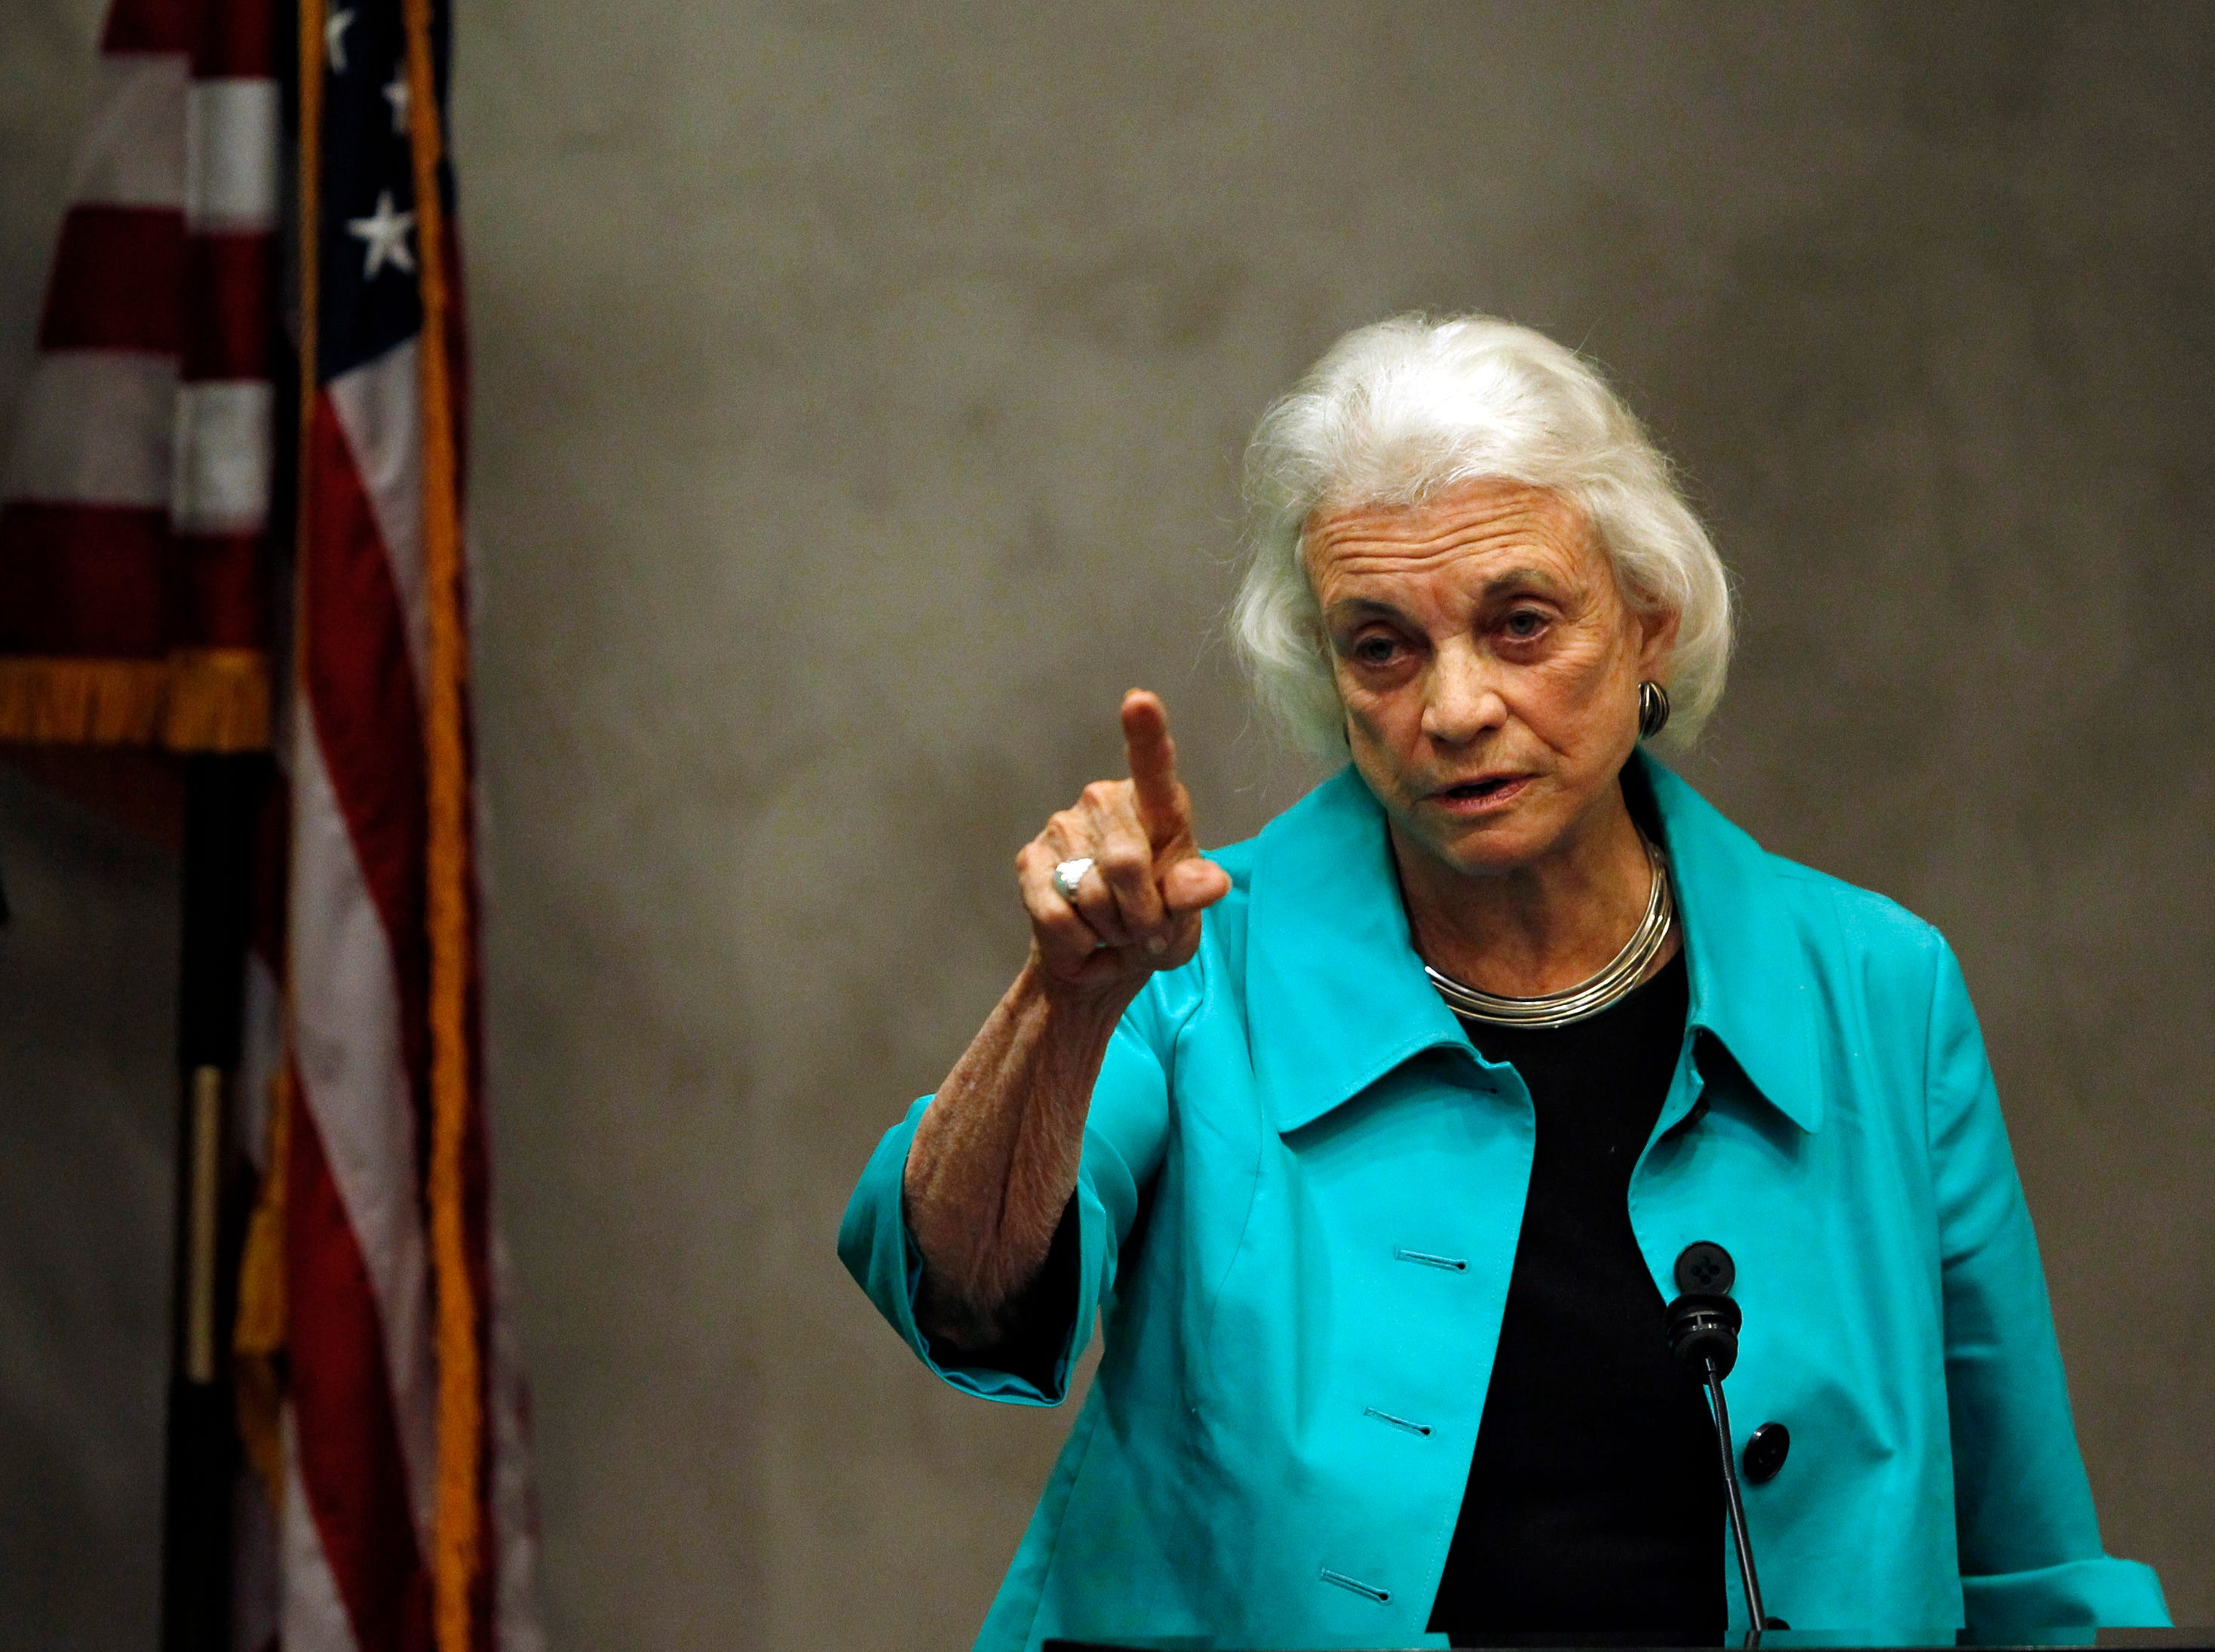 'First' gives Arizonans their closest look yet at Sandra Day O'Connor